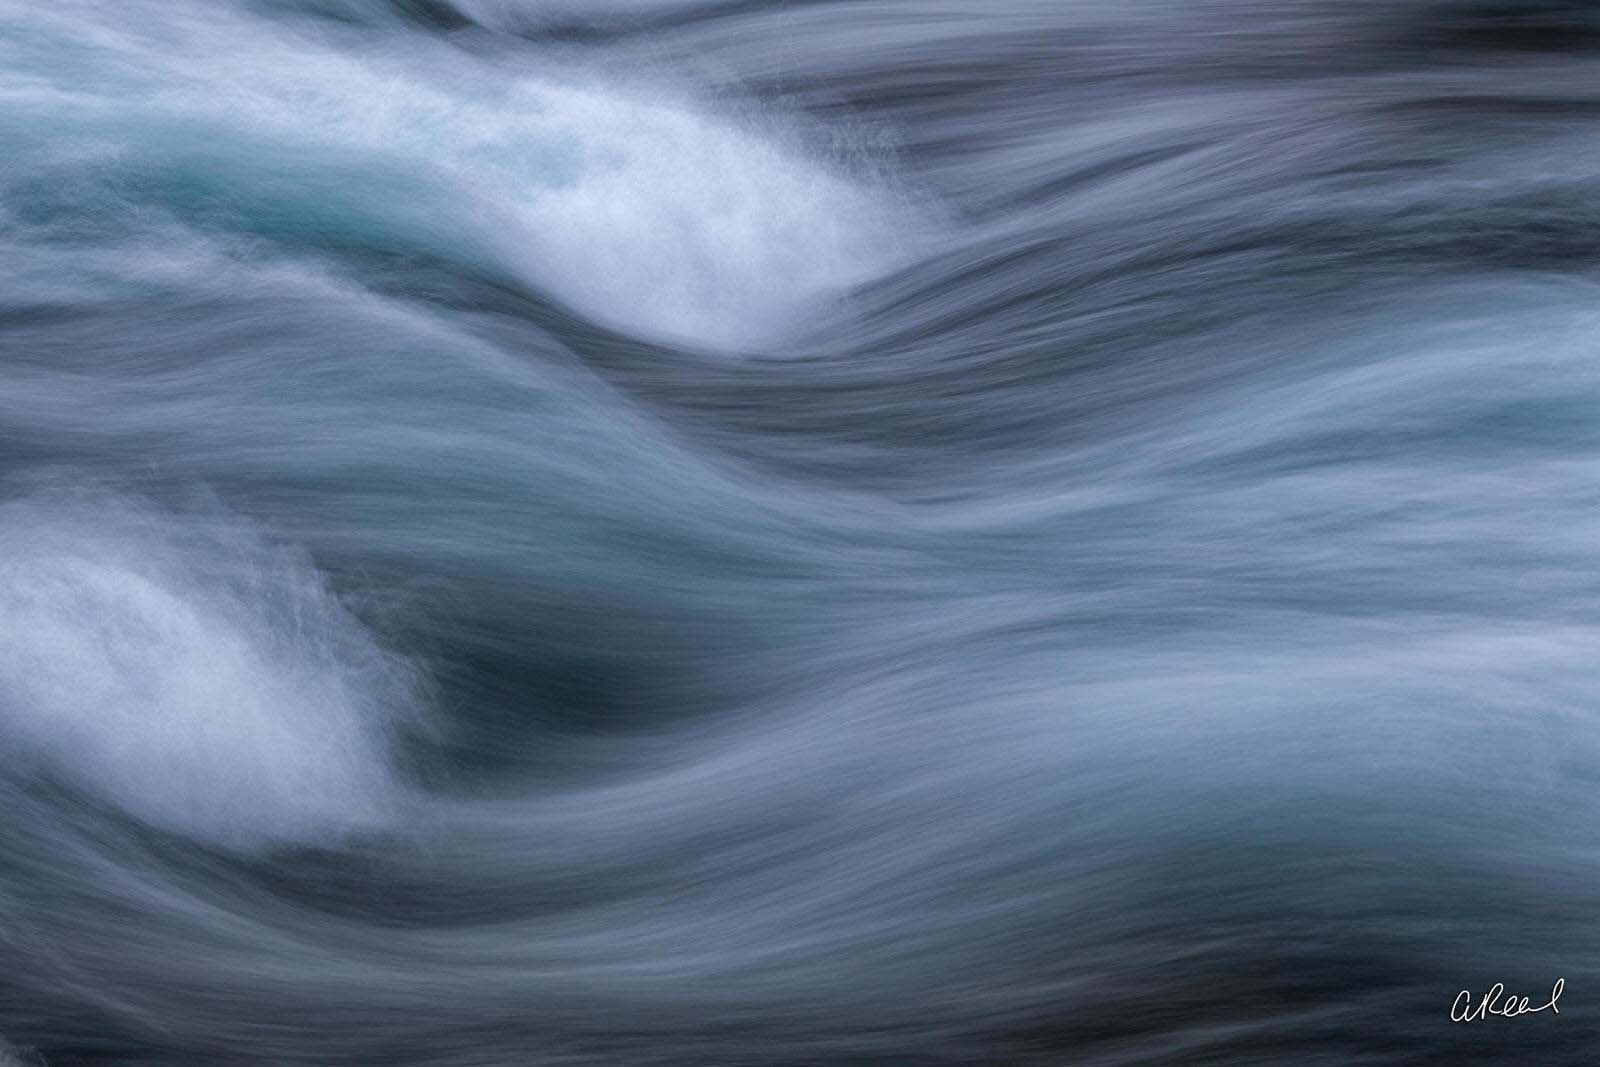 Motion, Time, Fine Art, Limited Edition, Waves, Water, Iceland, photo